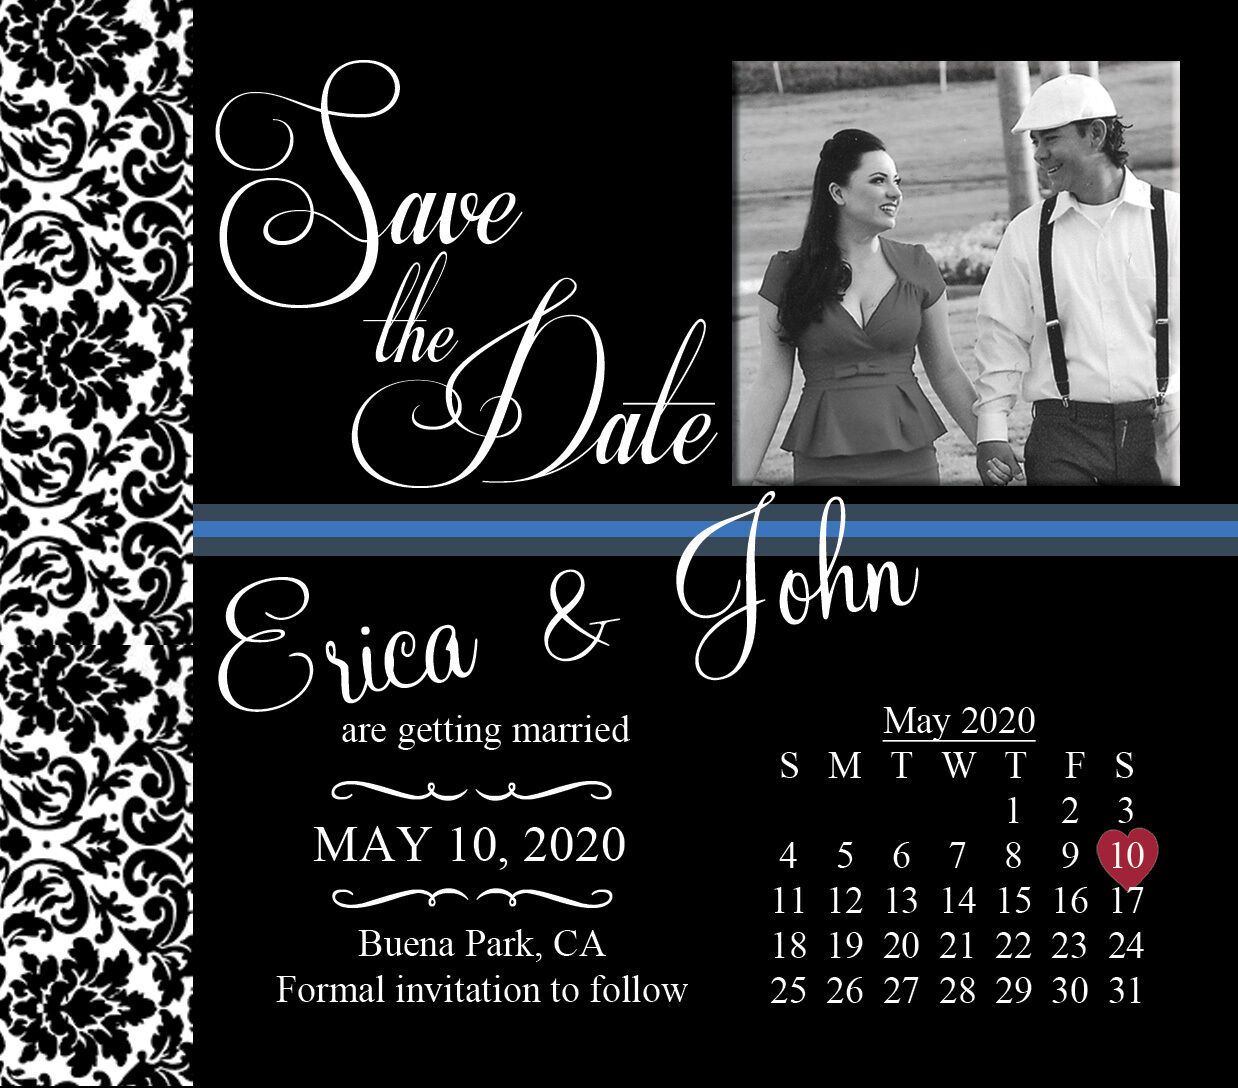 Large Save the Date Wedding Invitation Magnets Favors w Photo